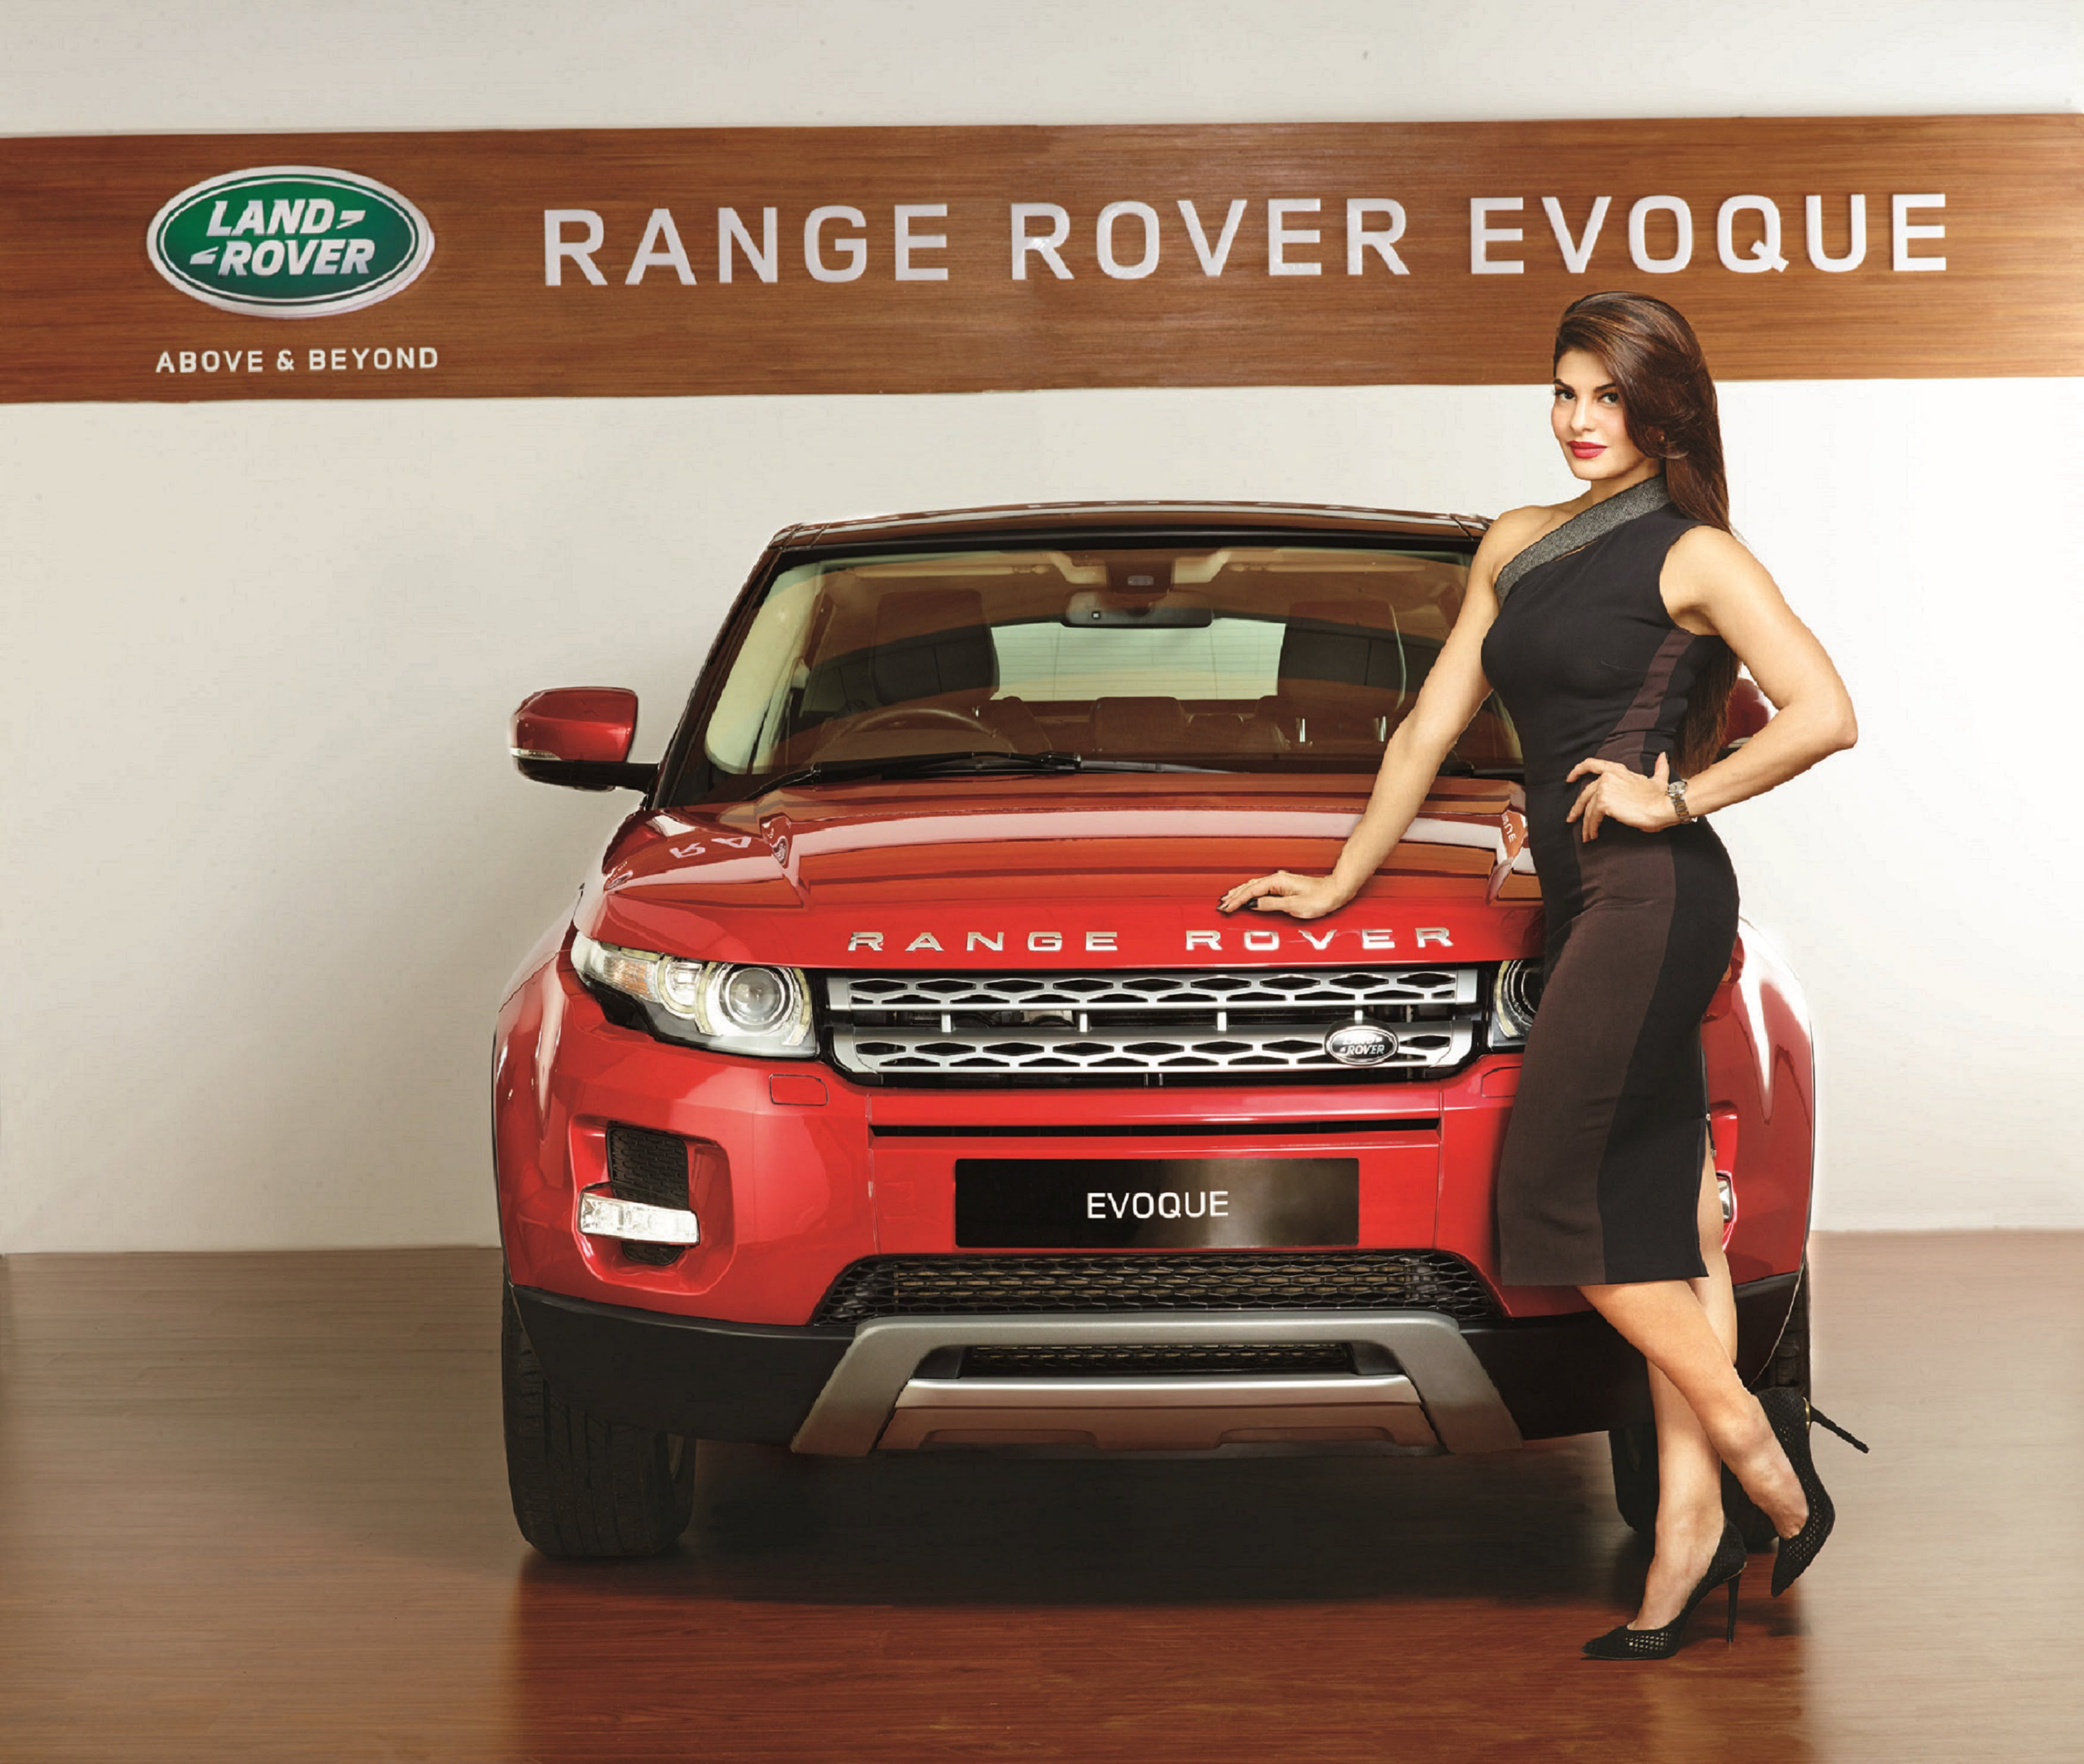 Range Rover Evoque Price In India Drops By CKD Assembly